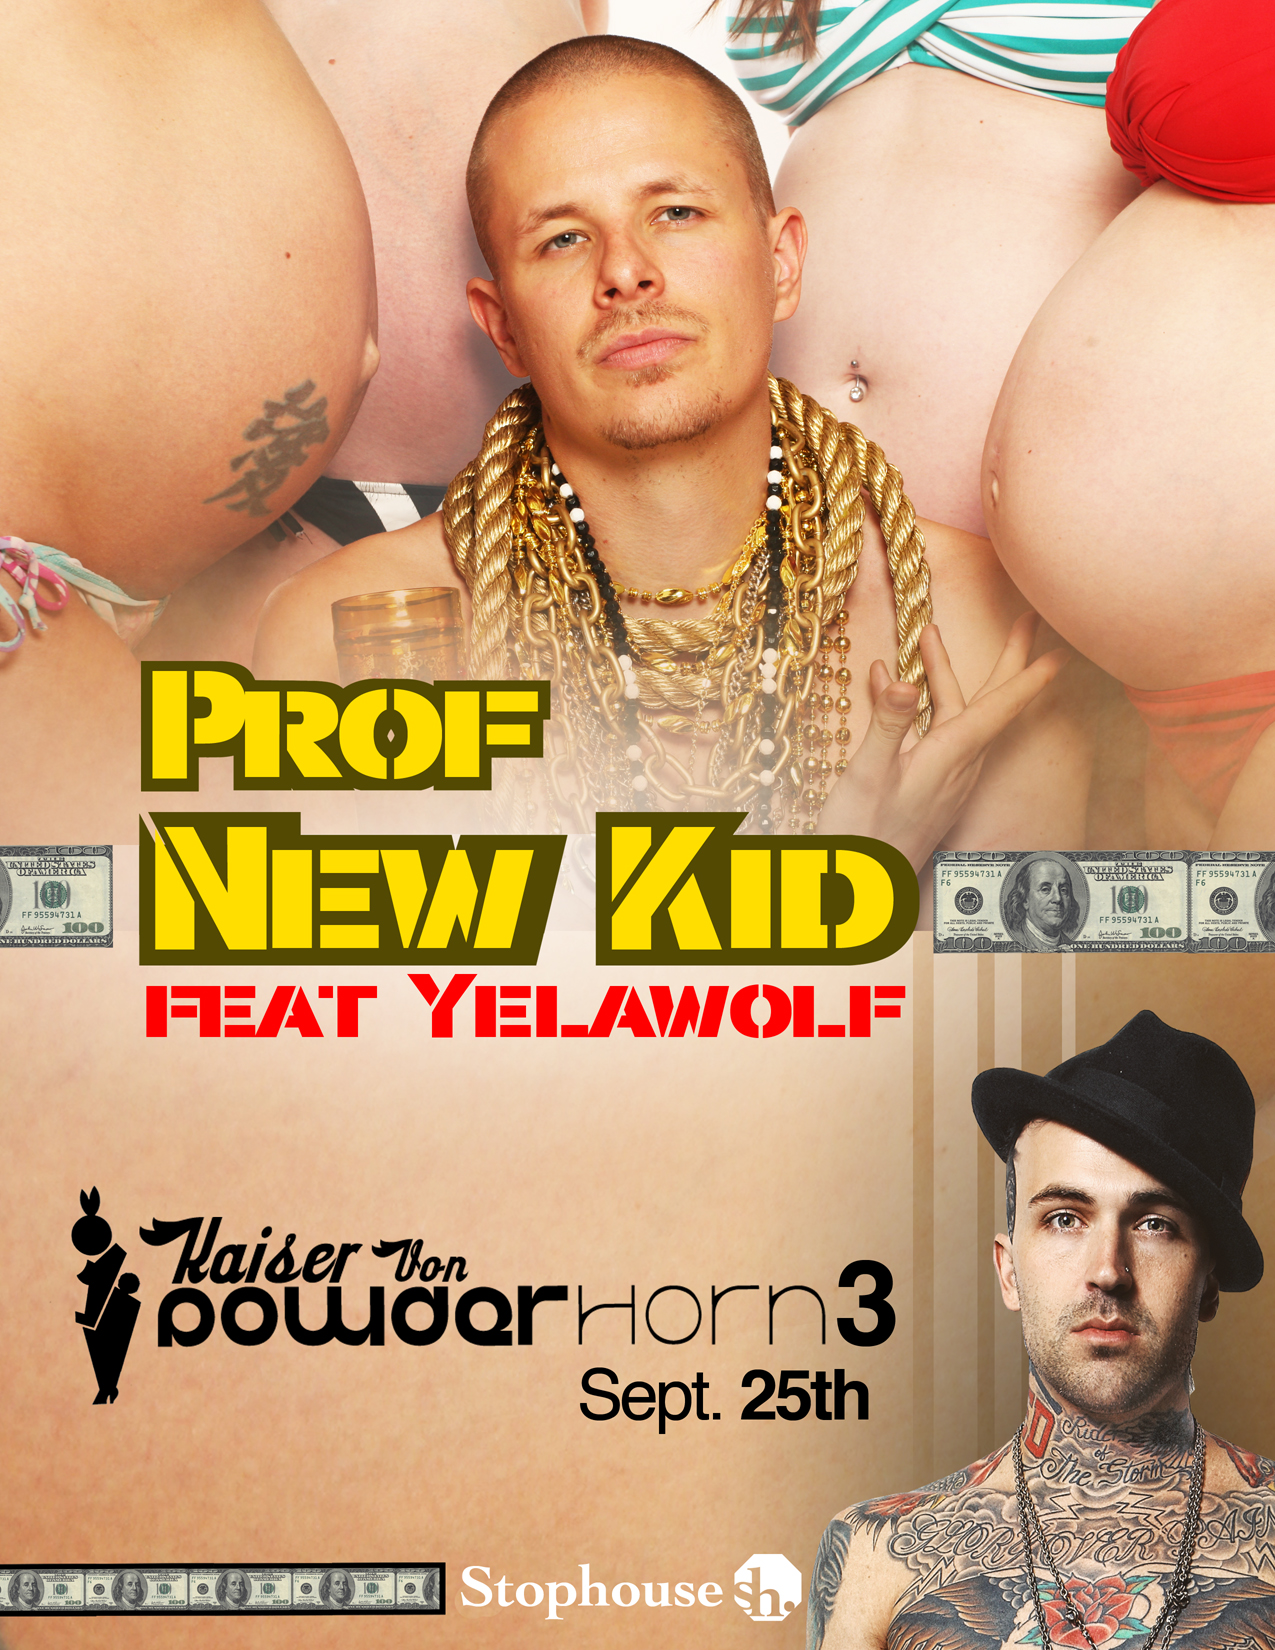 Prof - New Kid feat. Yelawolf